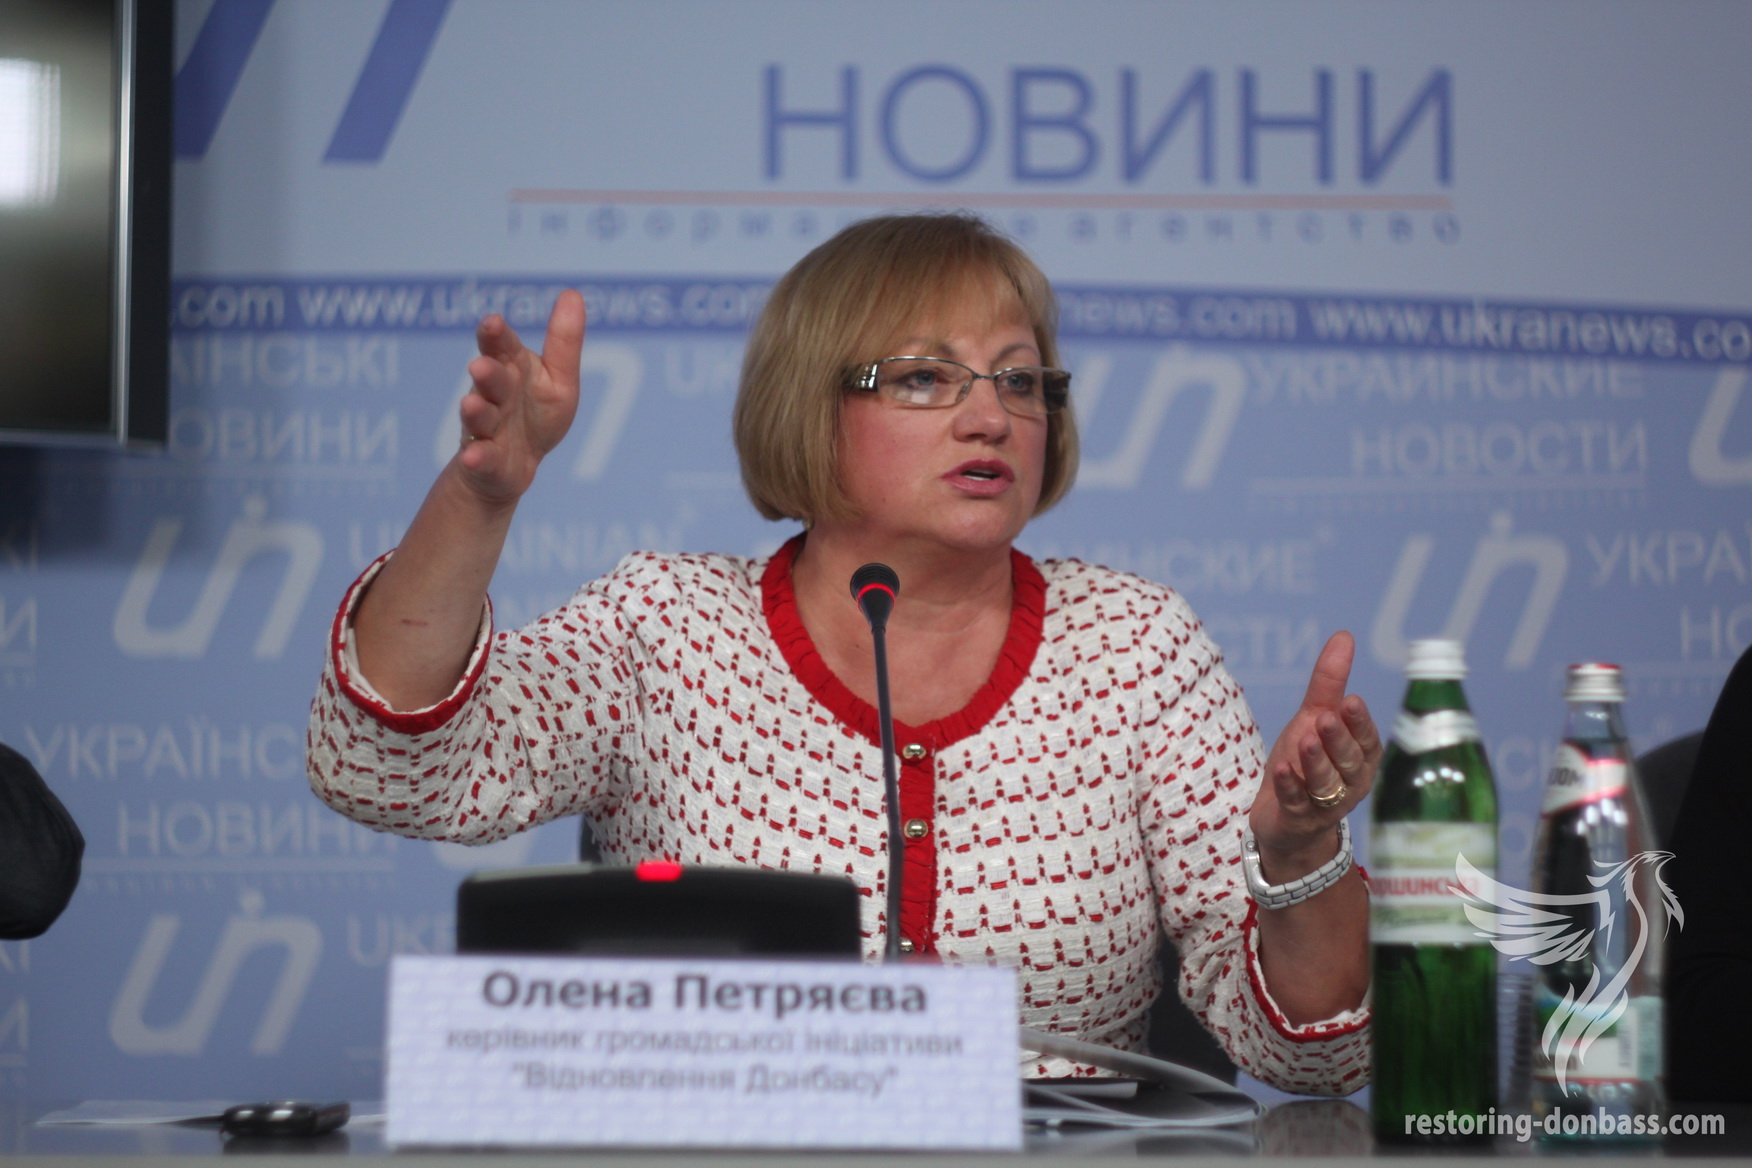 The head of the initiative Elena Petryayeva is answering on journalists' questions